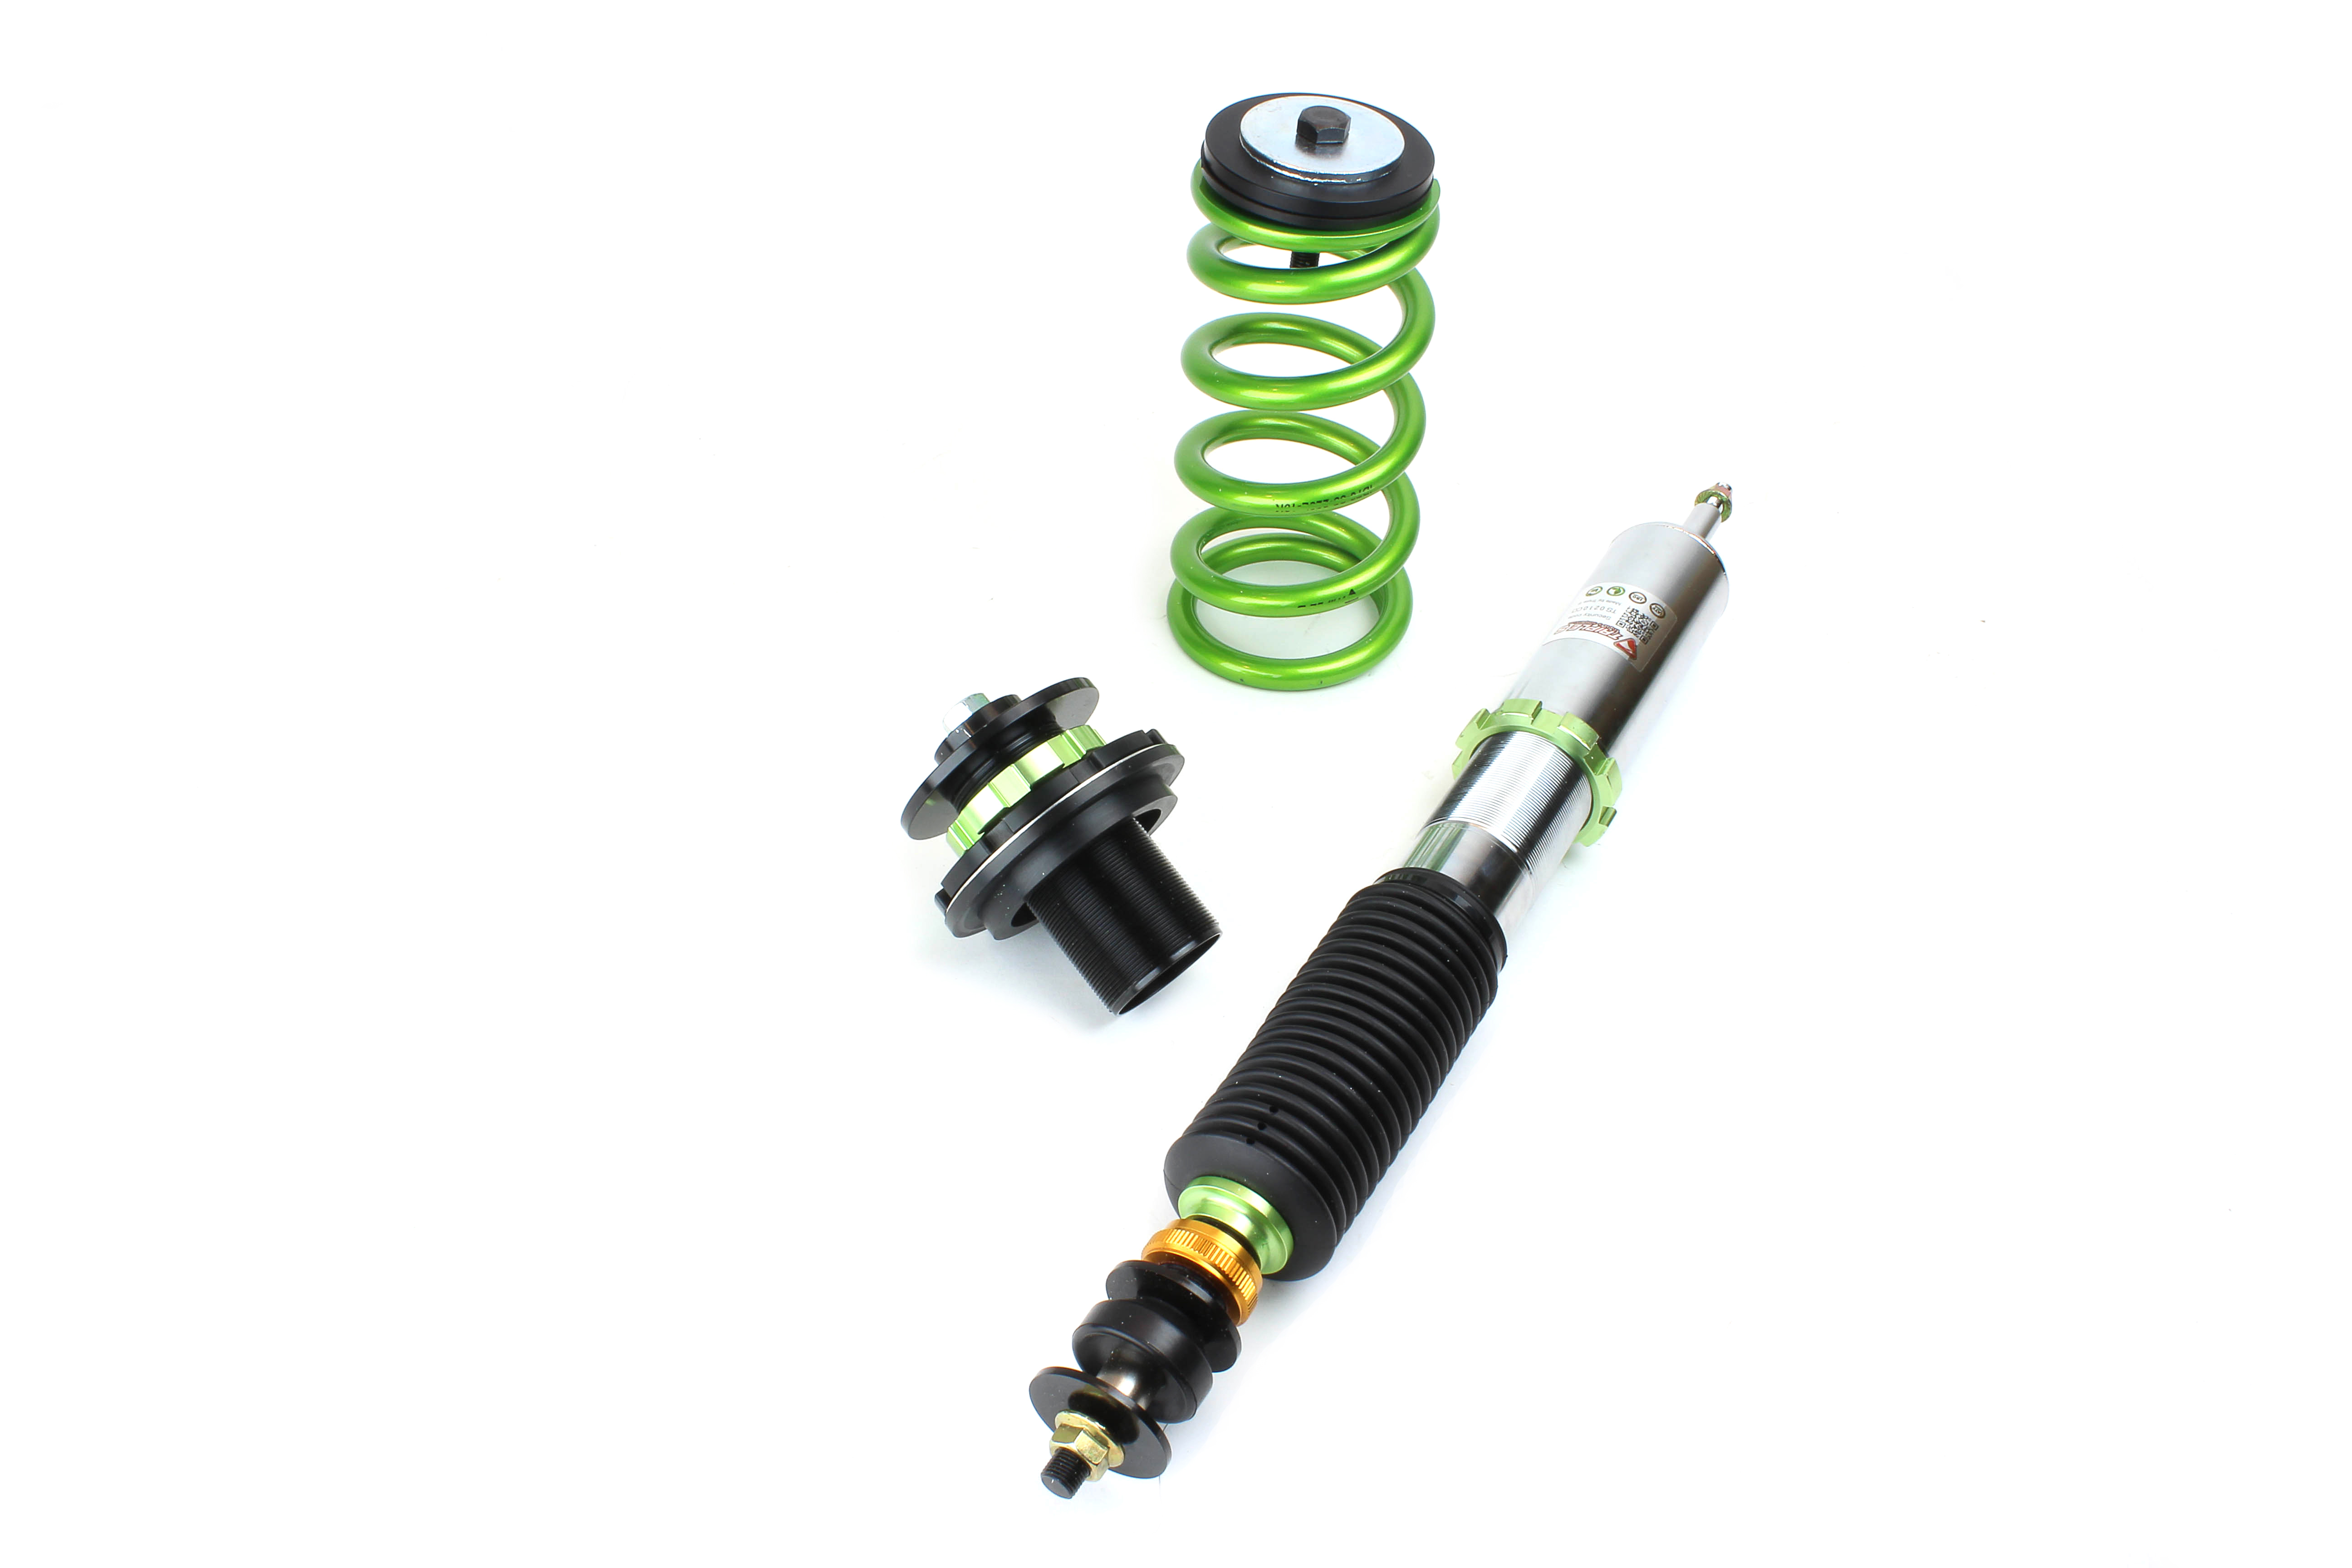 Ford Mustang S550 Triple S Inverted Coilover